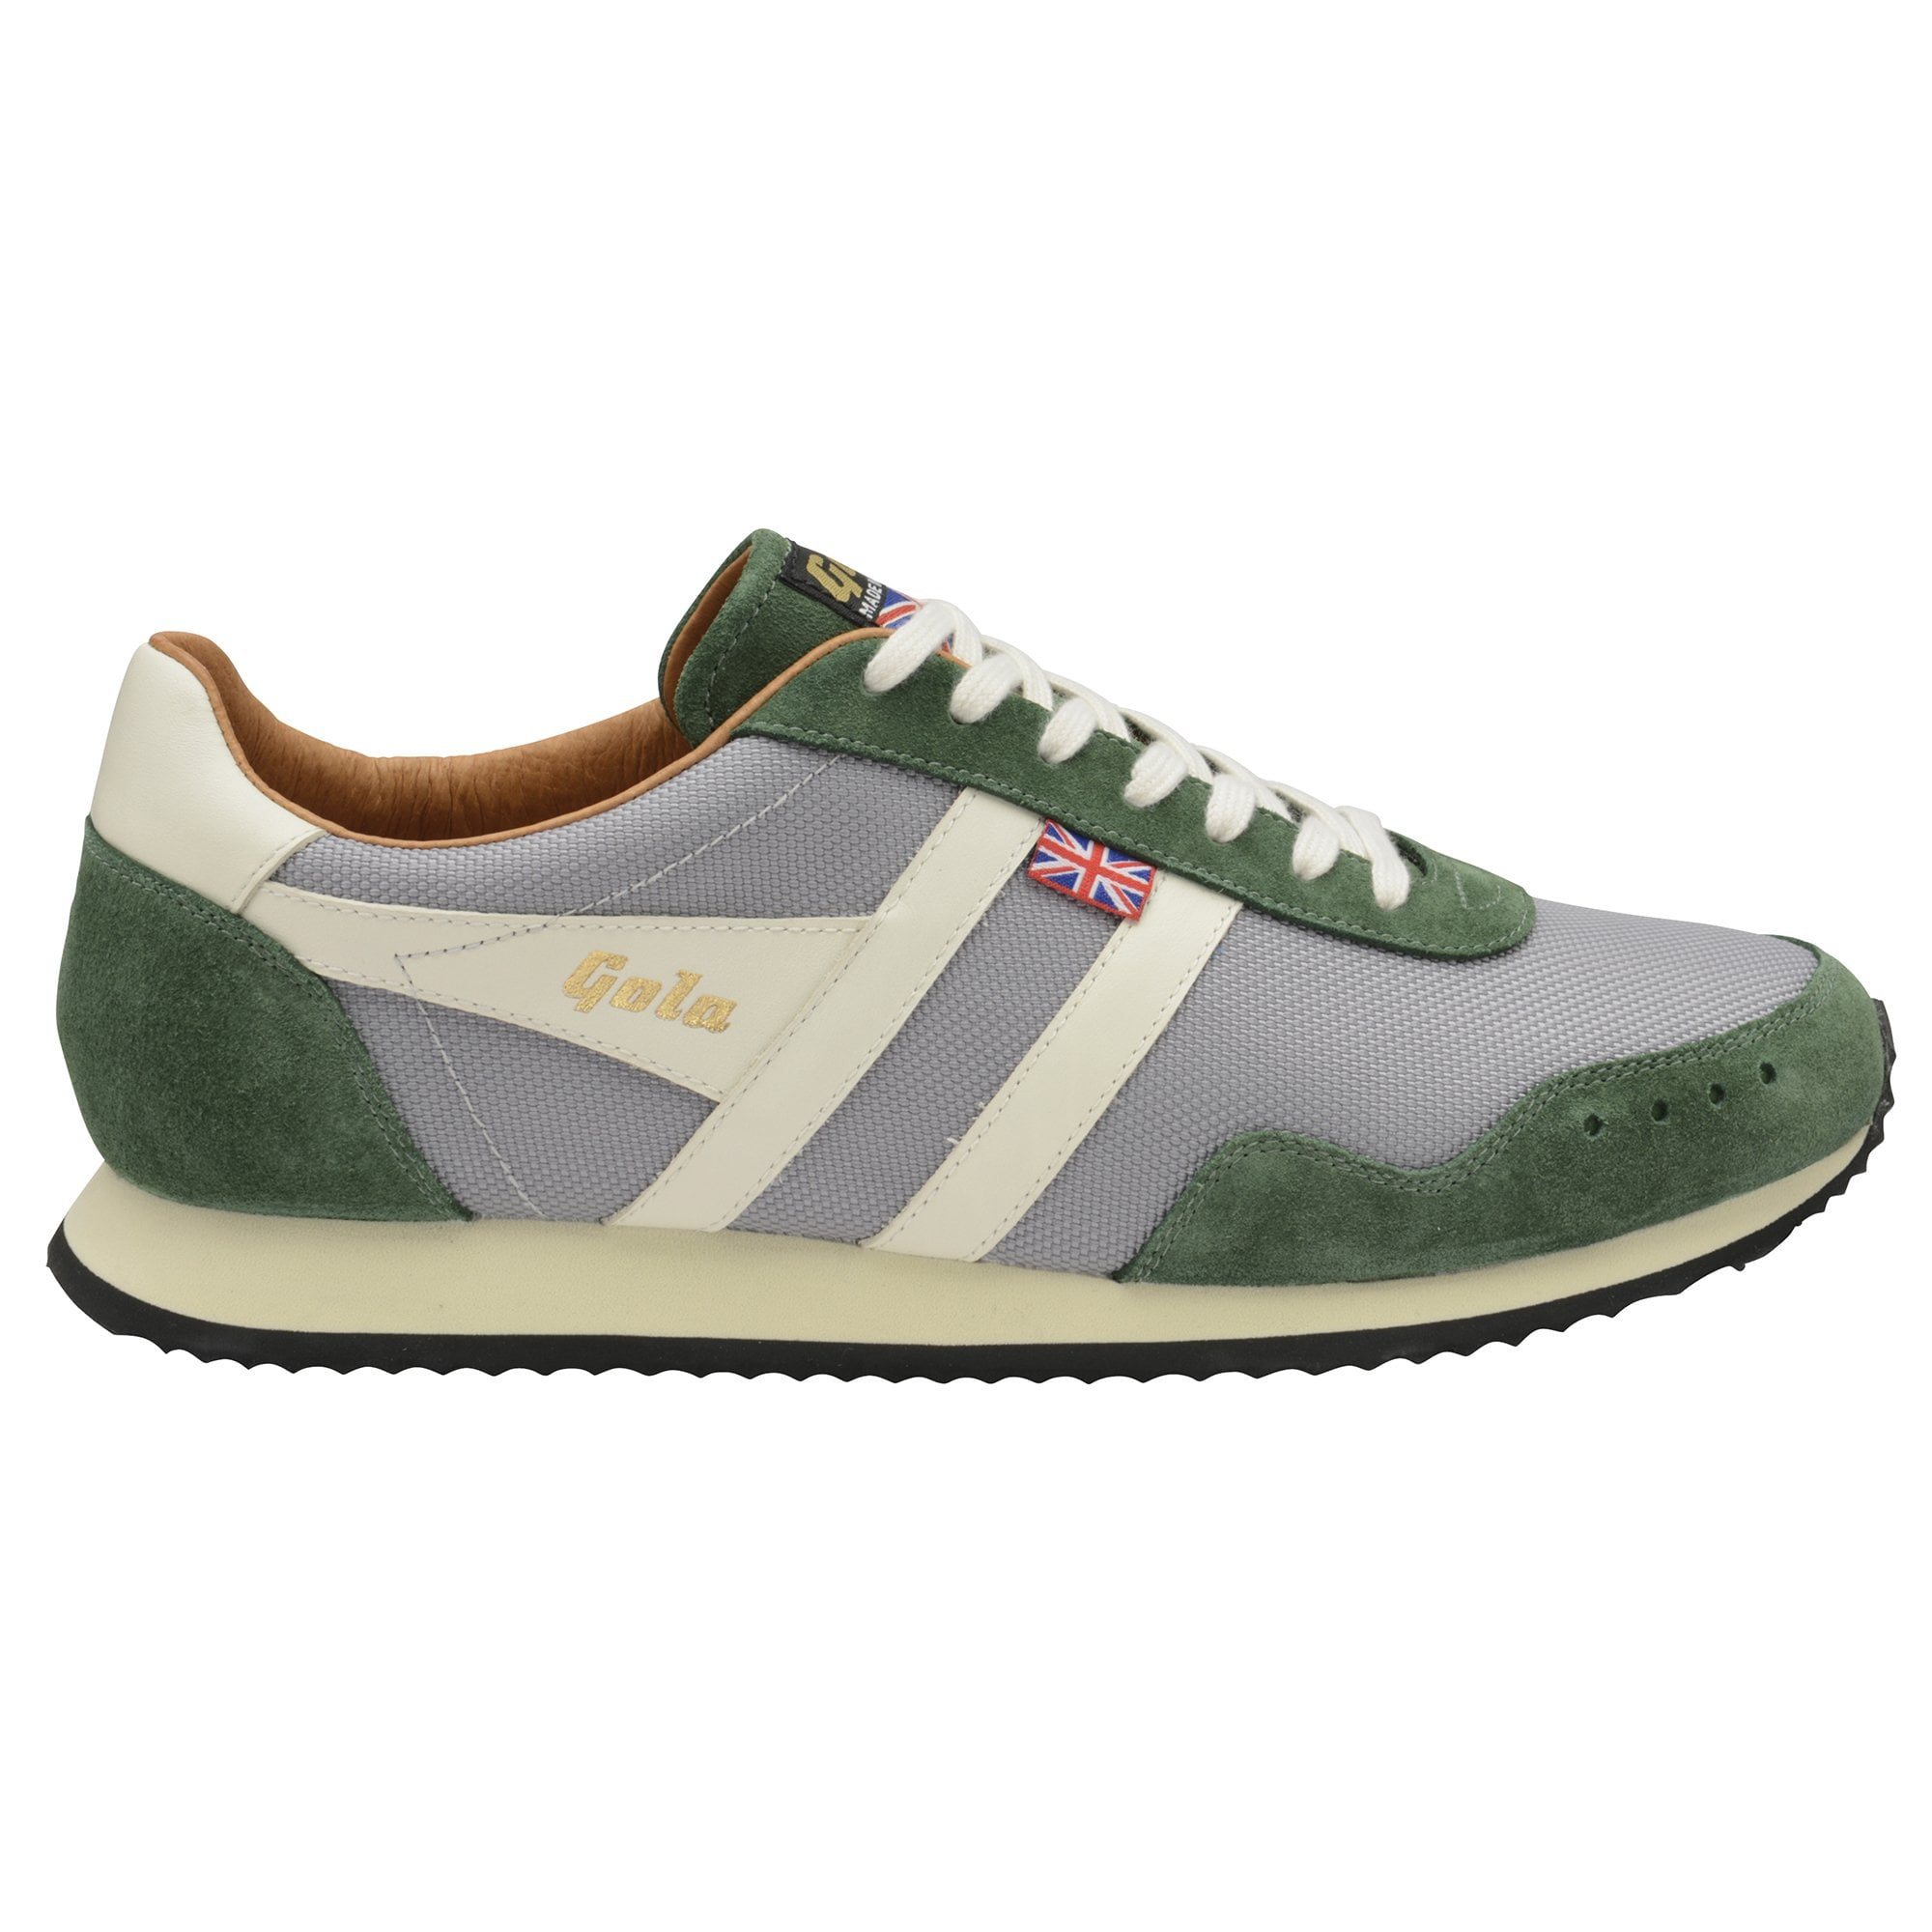 Buy Gola Track Mesh 317 trainers in